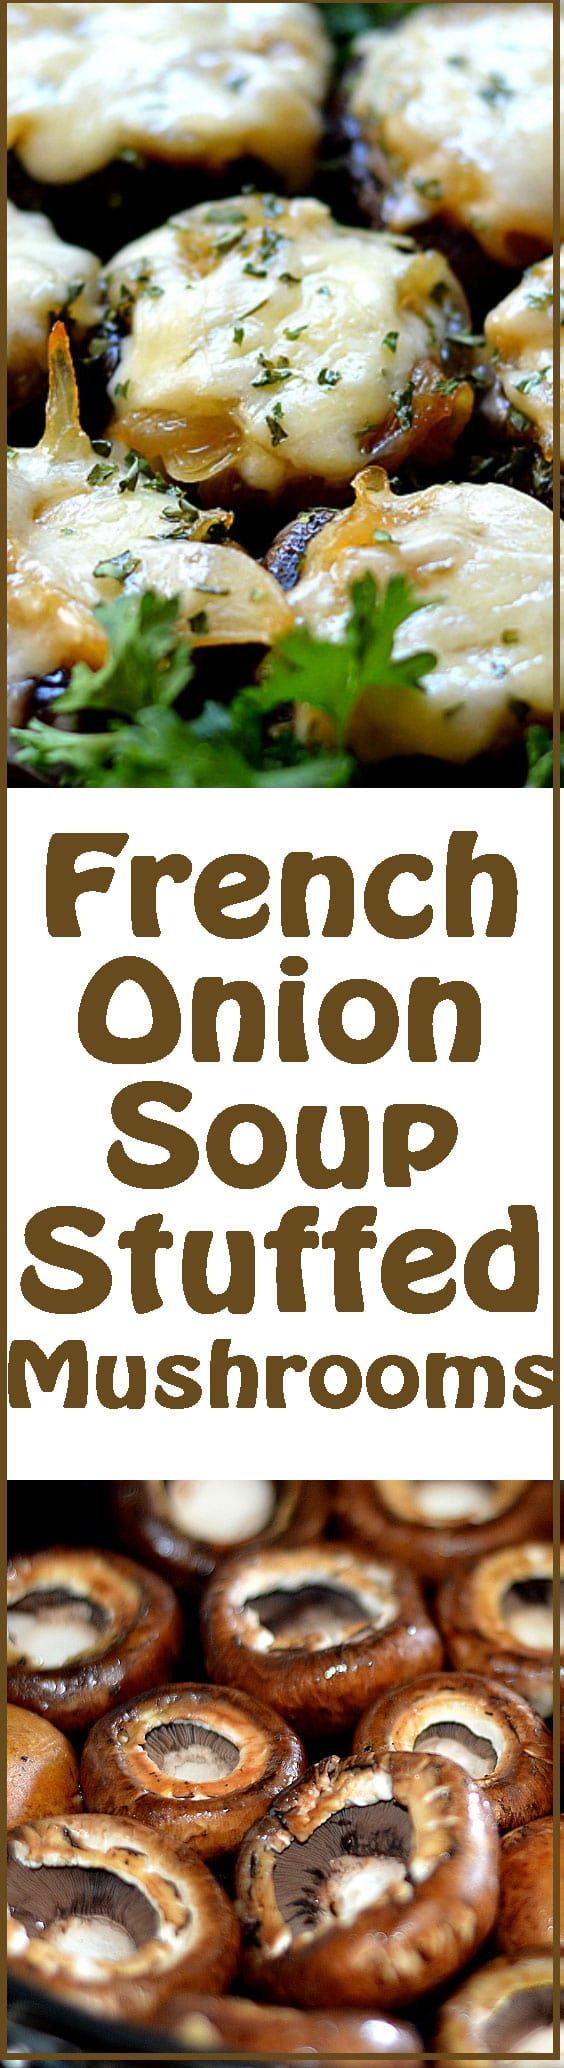 French Onion Soup Stuffed Mushrooms - switch out the cheese for vegan Mozzarella or Swiss